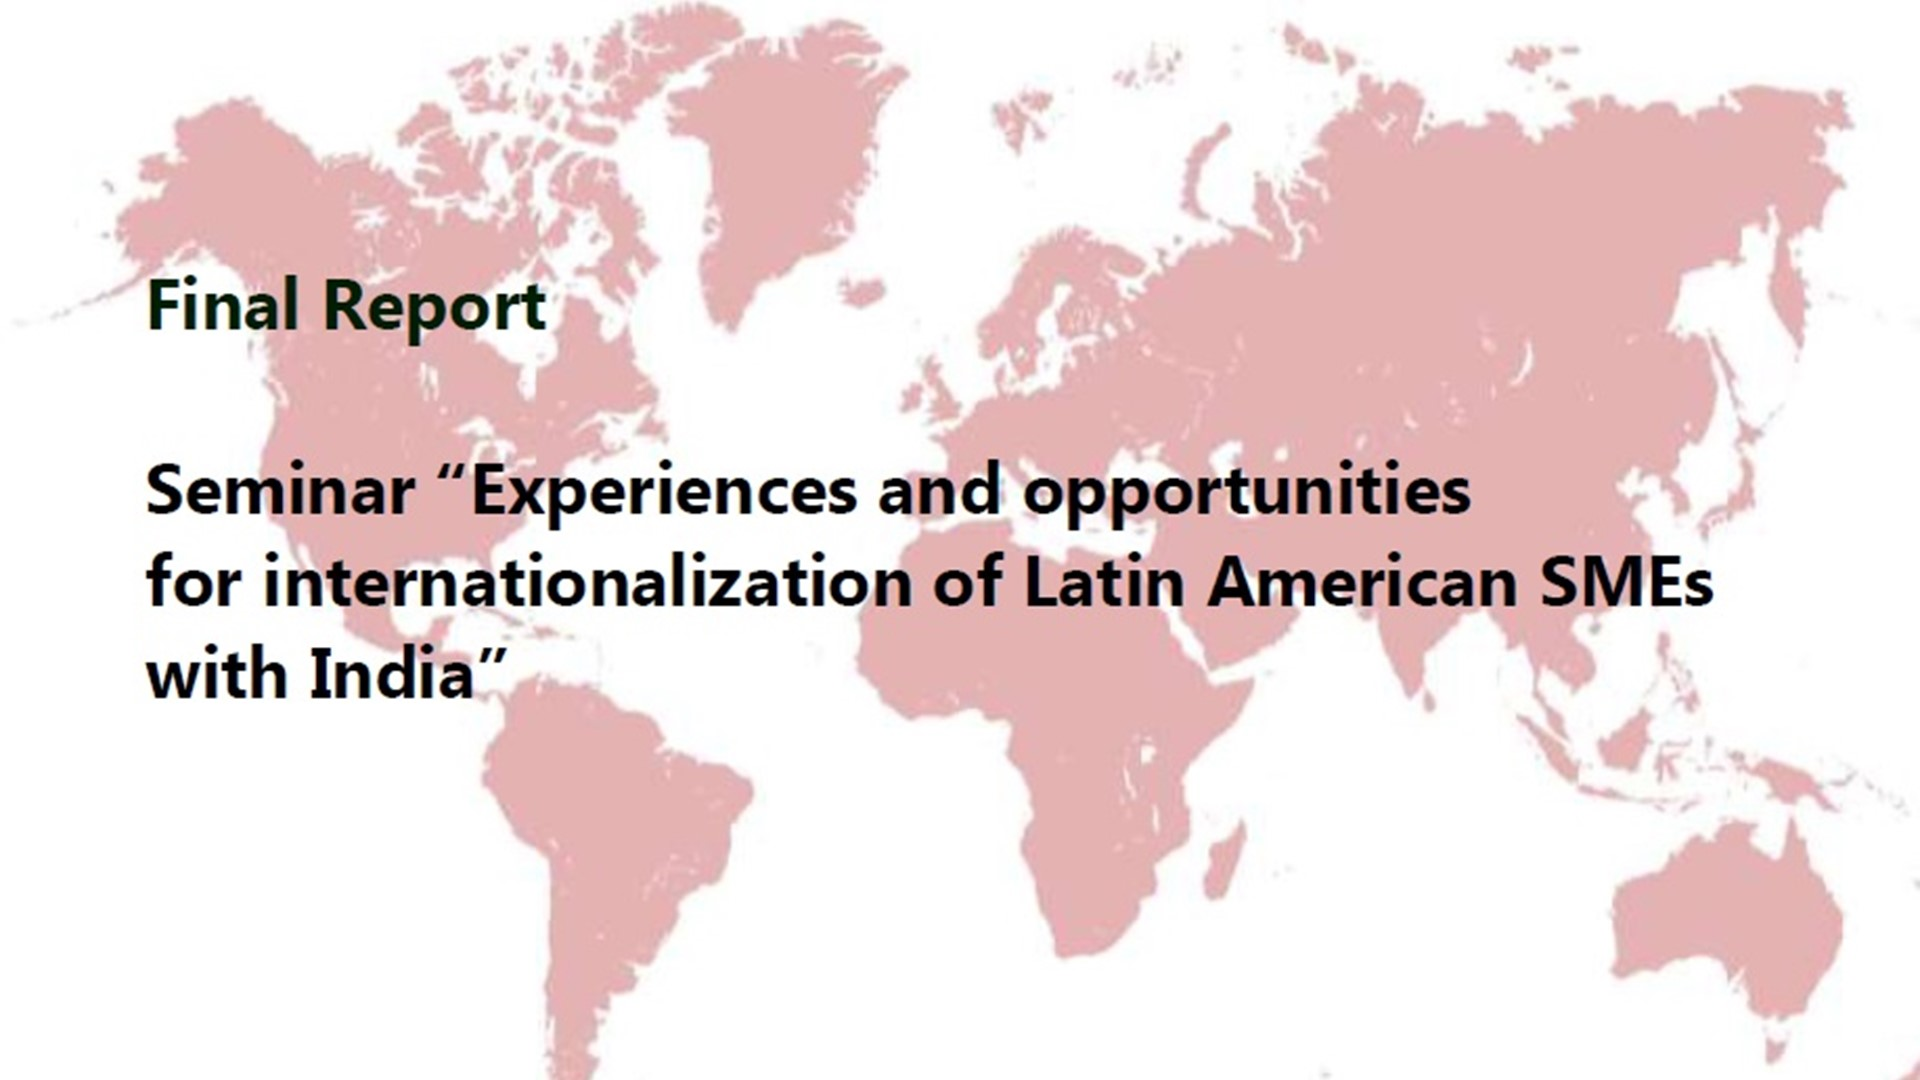 Experiences and opportunities for internationalization of Latin American SMEs with India